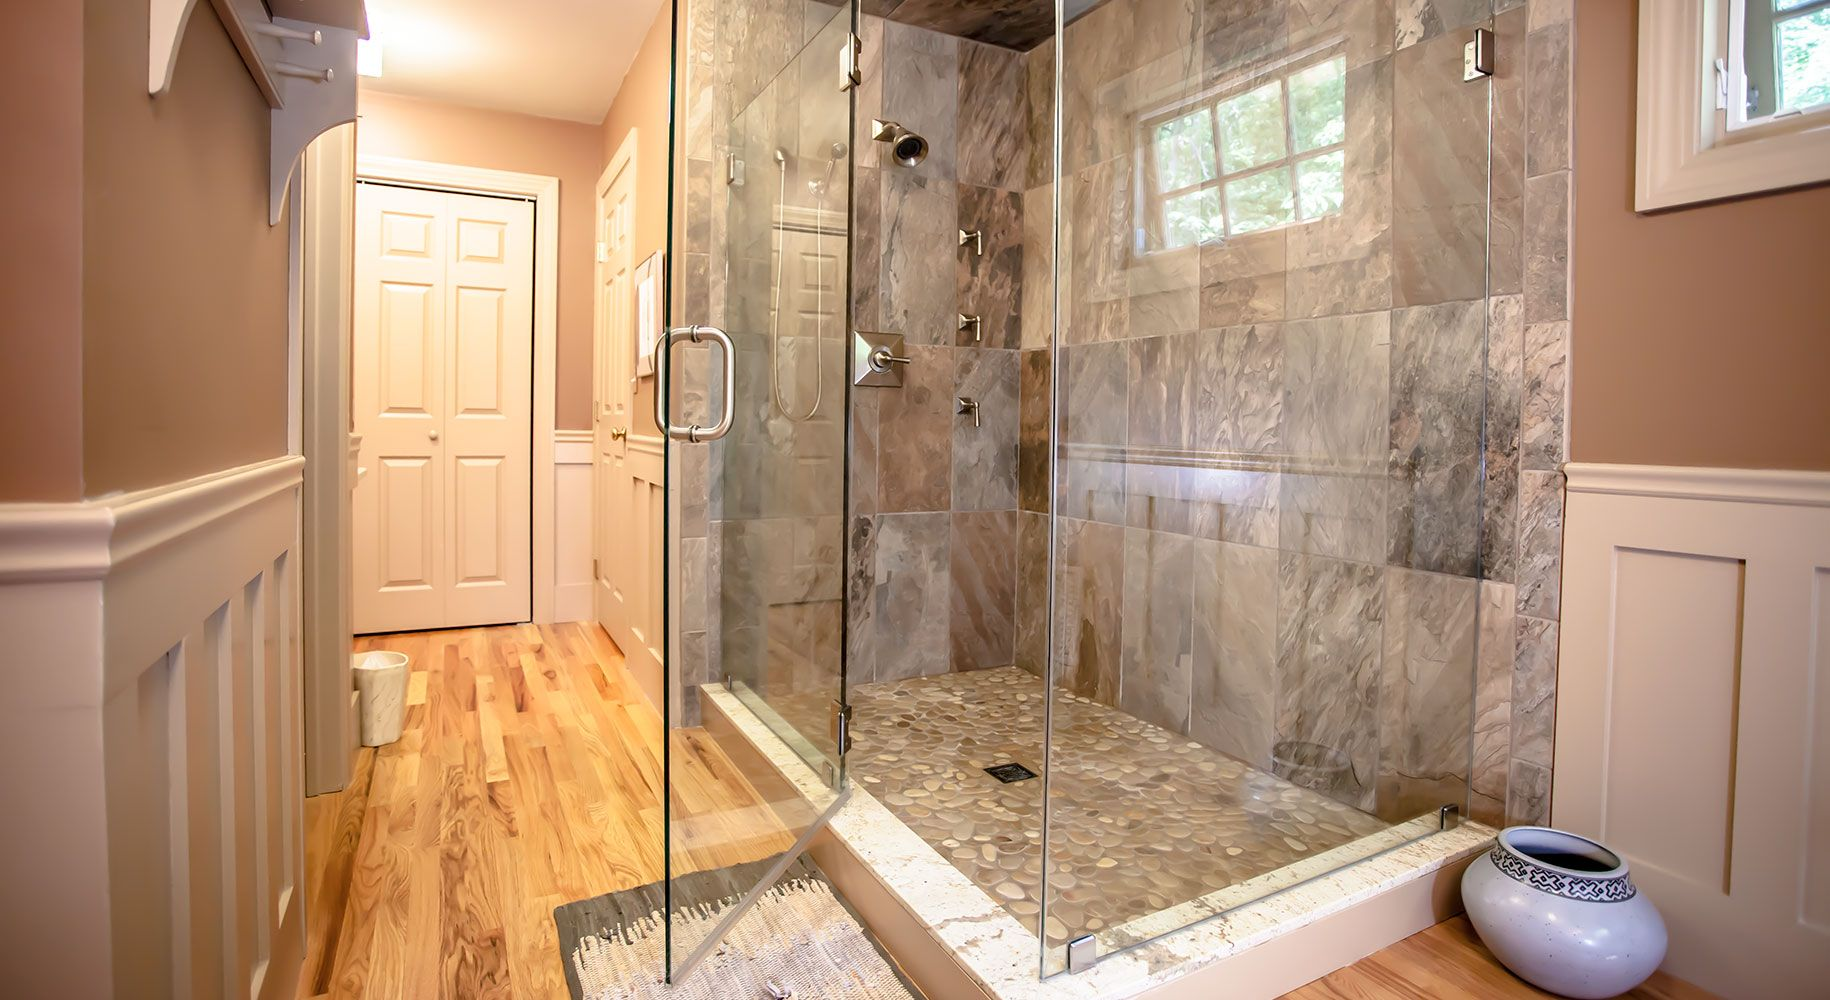 Torrco design consultants helped the homeowners bring their love of the outdoors indoors – with a glass-encased shower where natural light cascades onto a fine stone ground.